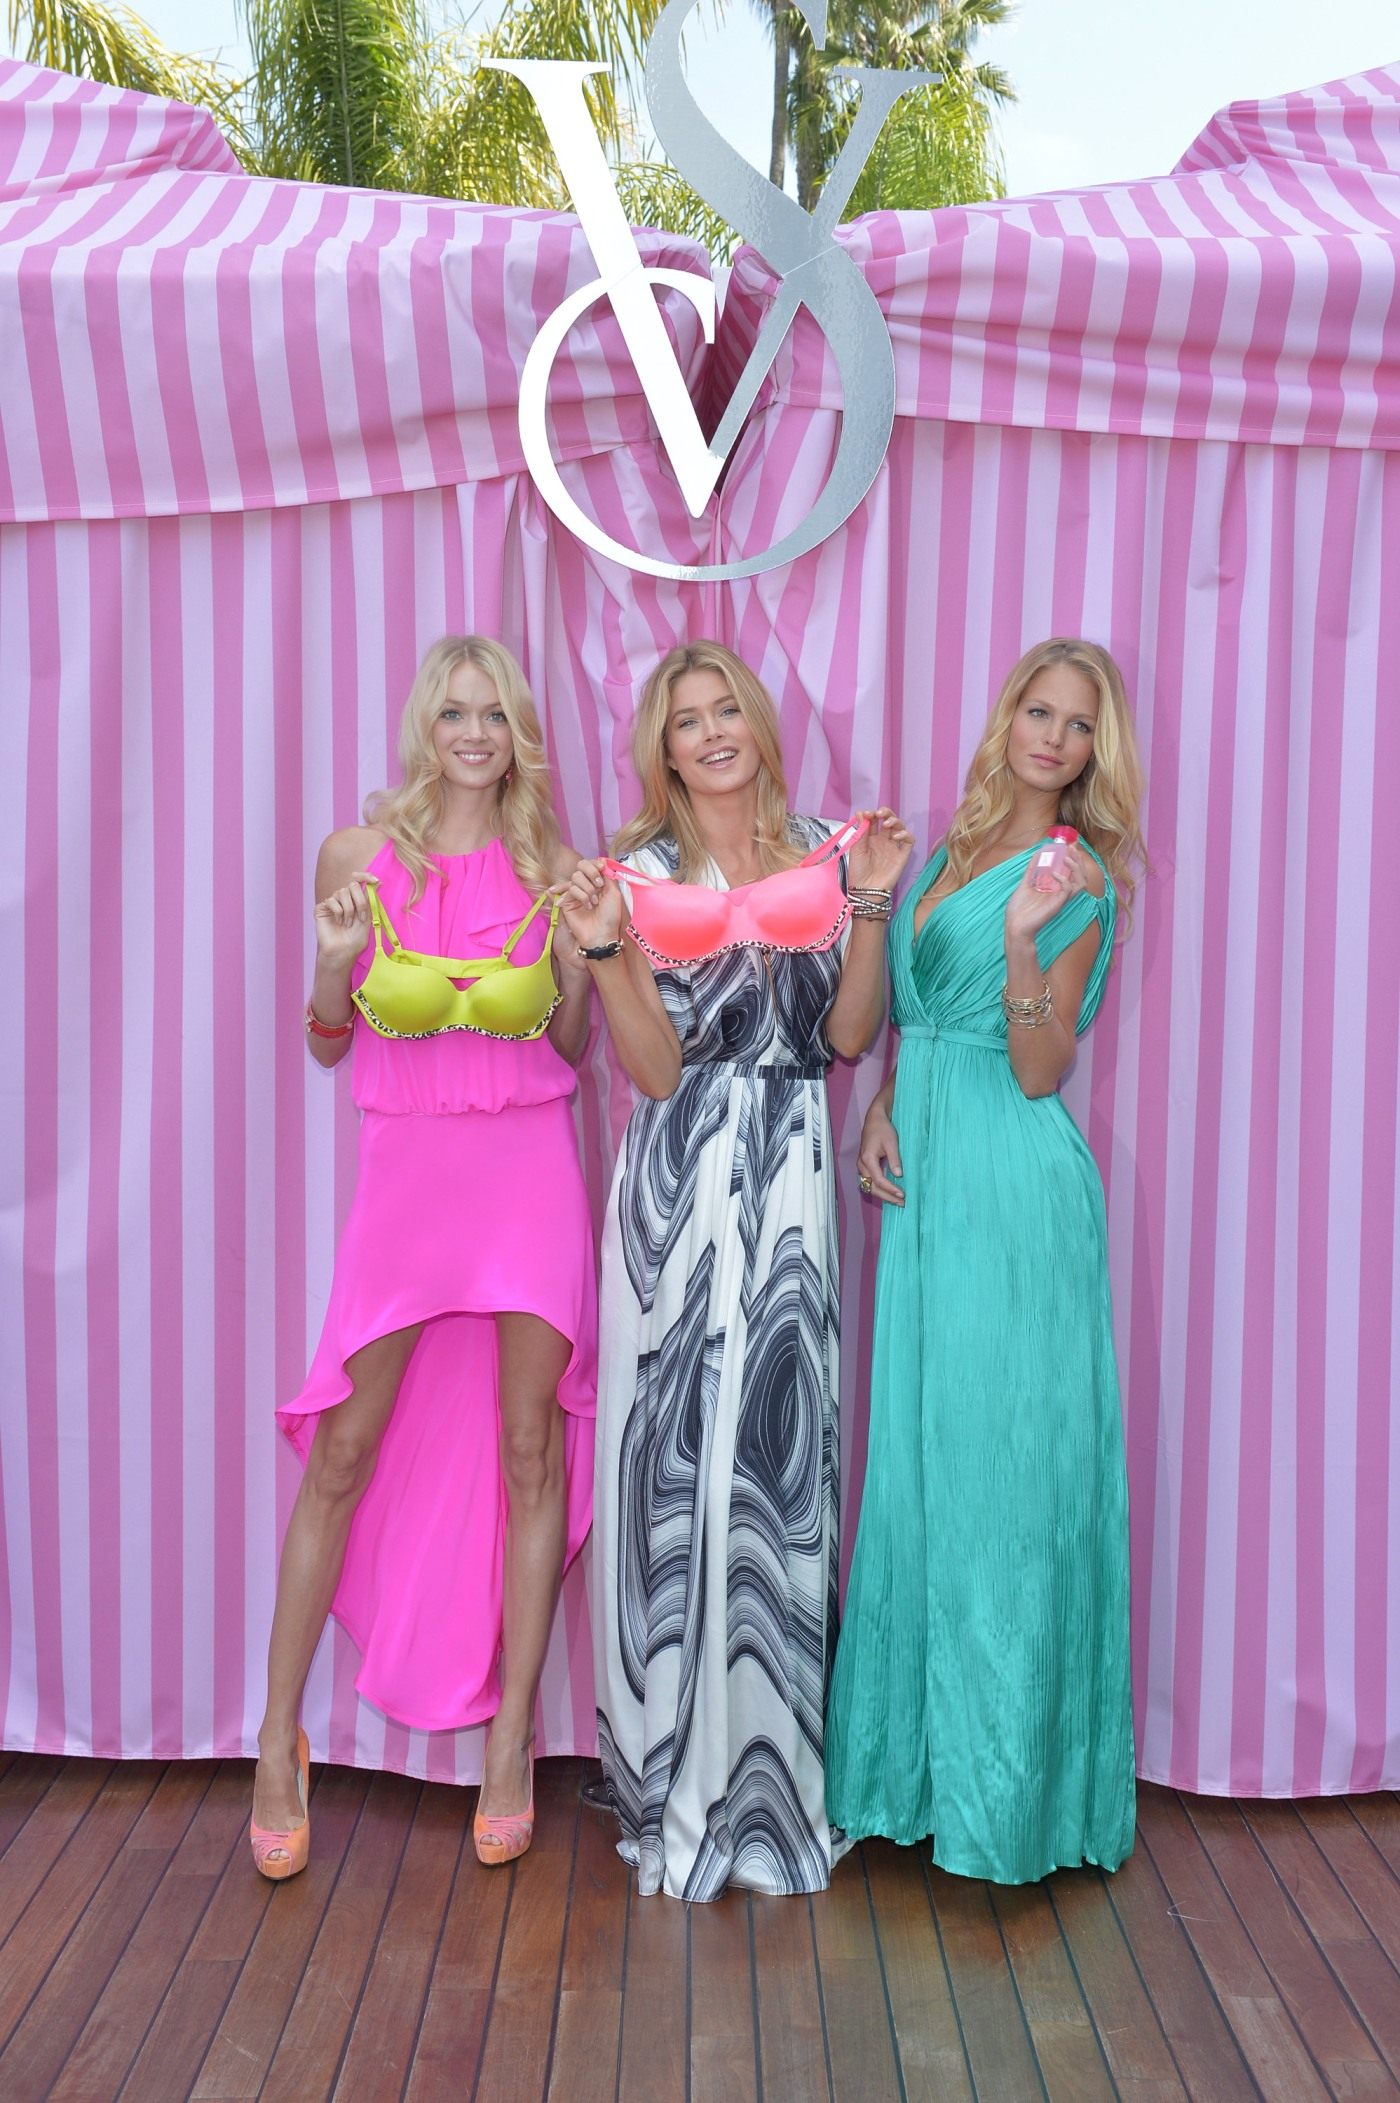 Victoria Secret Angels, Doutzen Krous, Erin Heatherton and Lindsay Ellingson